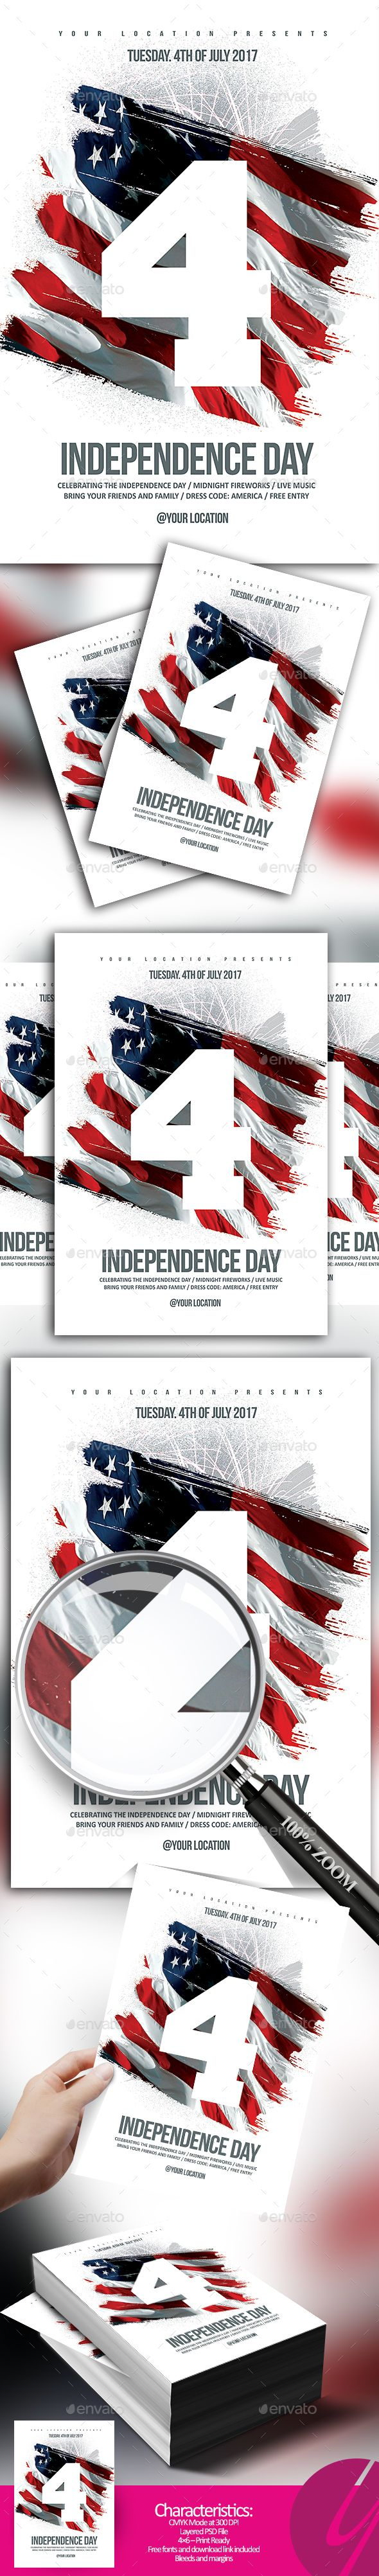 4th of July / Independence Day #Flyer - Holidays #Events Download here: https://graphicriver.net/item/4th-of-july-independence-day-flyer/20169907?ref=alena994